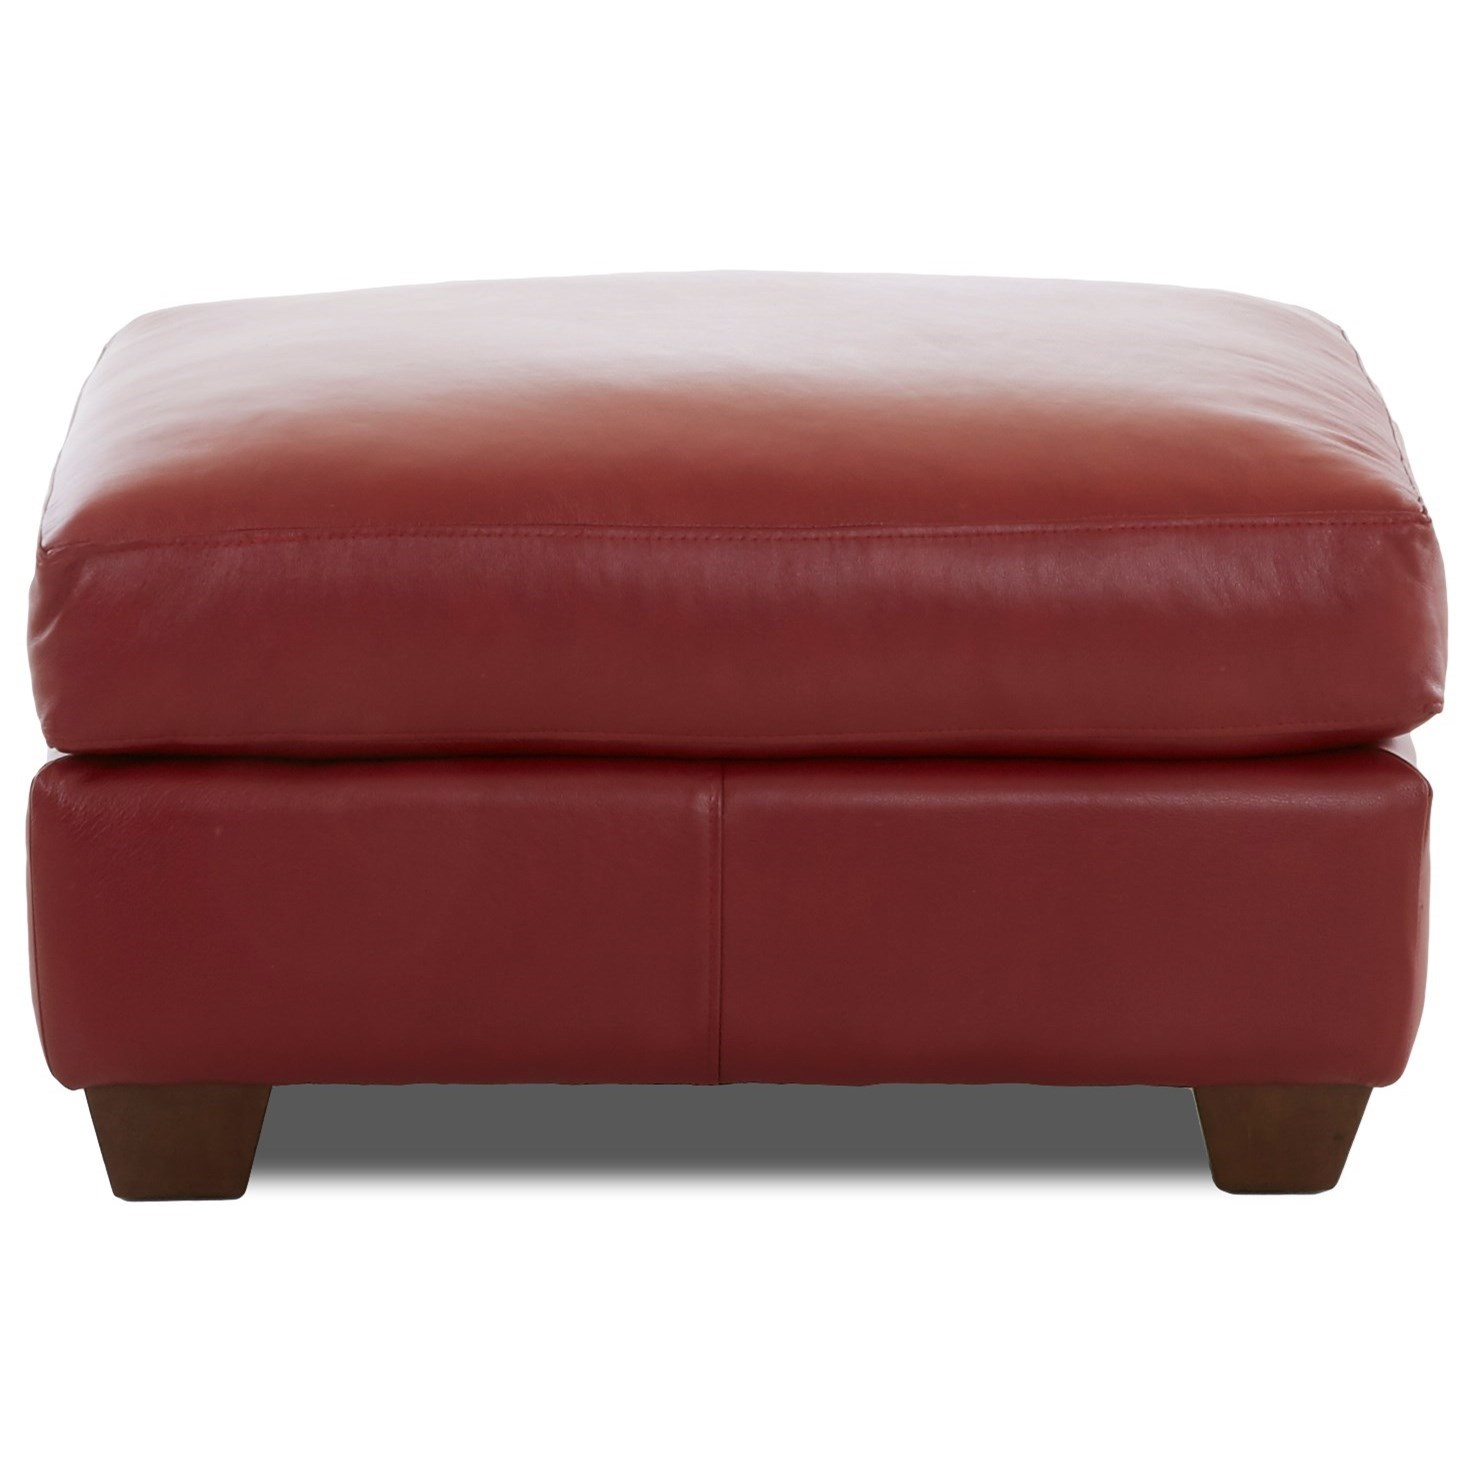 Moorland Ottoman by Klaussner at Northeast Factory Direct